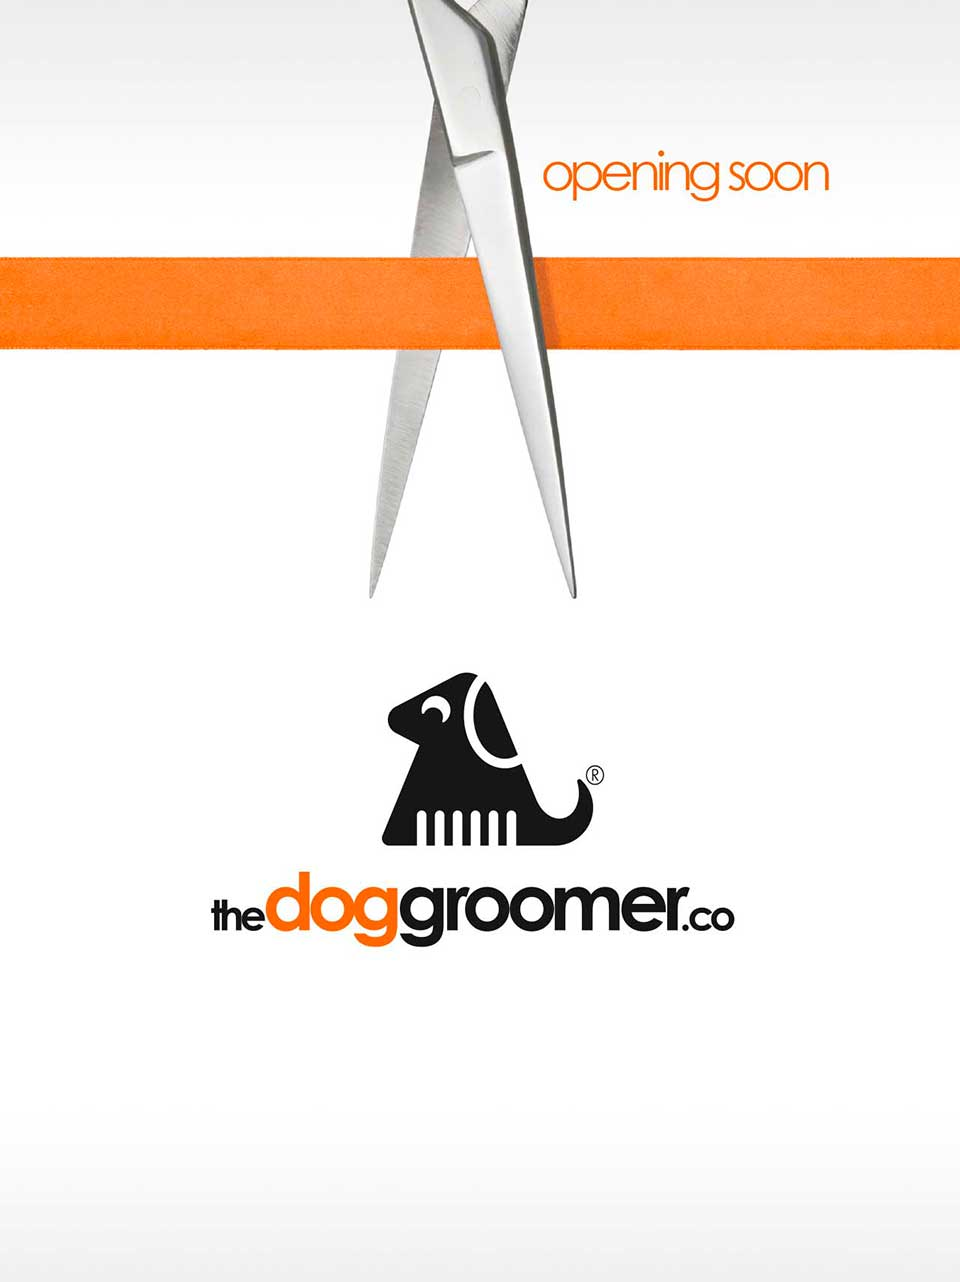 Opening for Business The Dog Groomer